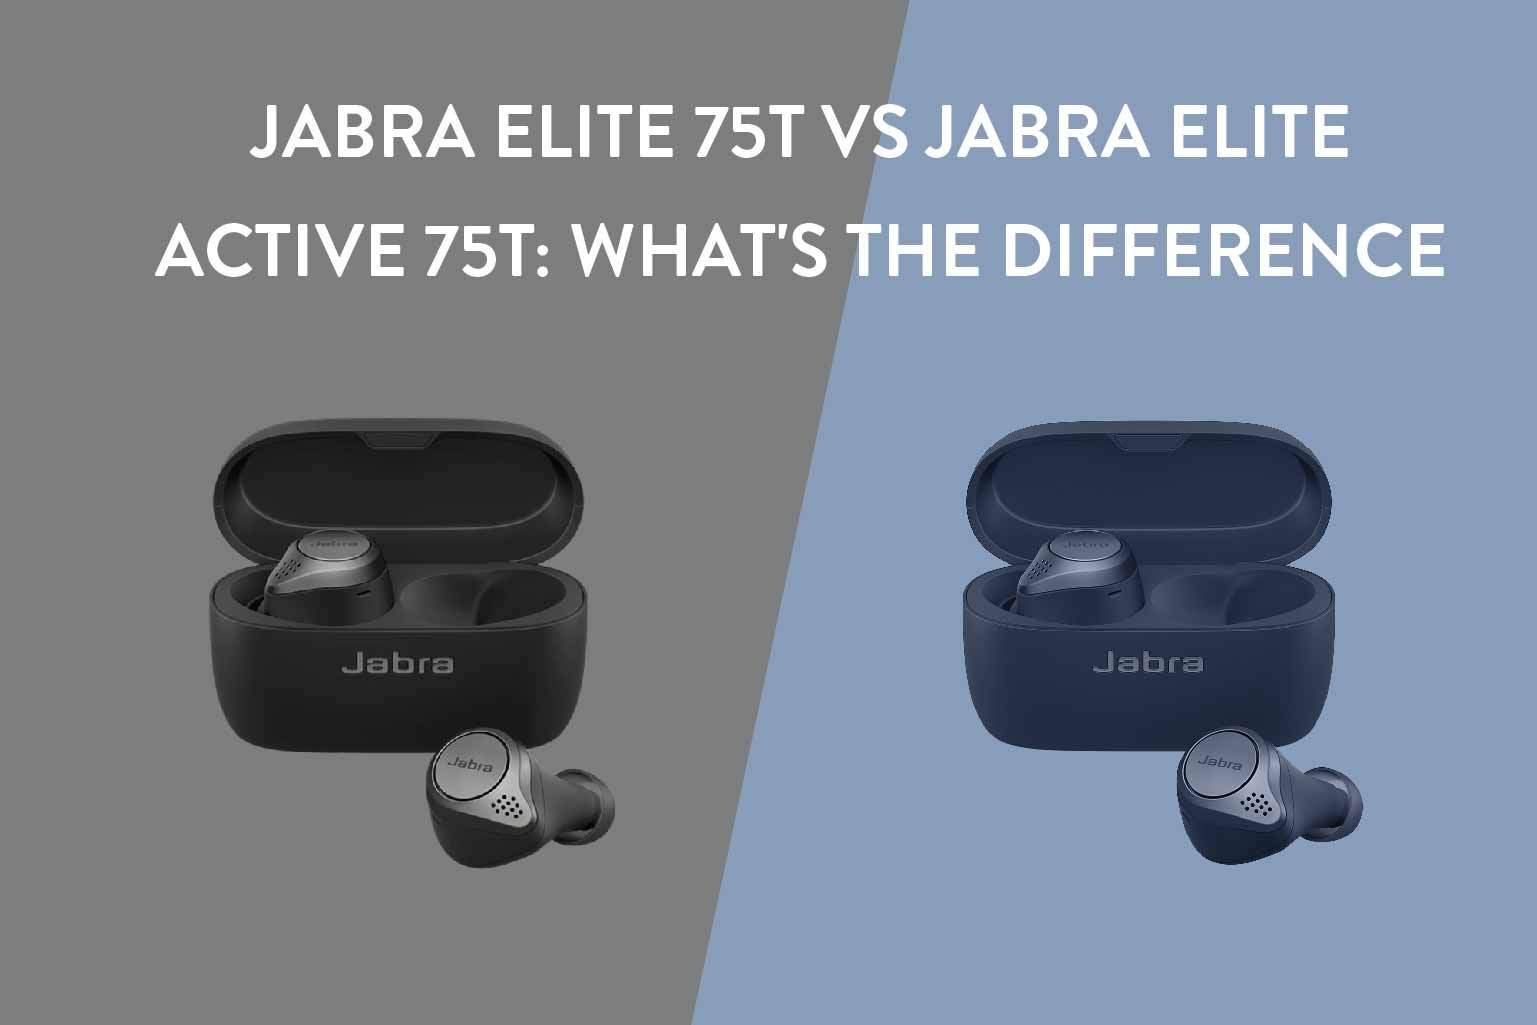 Jabra Elite 75t vs Jabra Elite Active 75t: What's The Difference